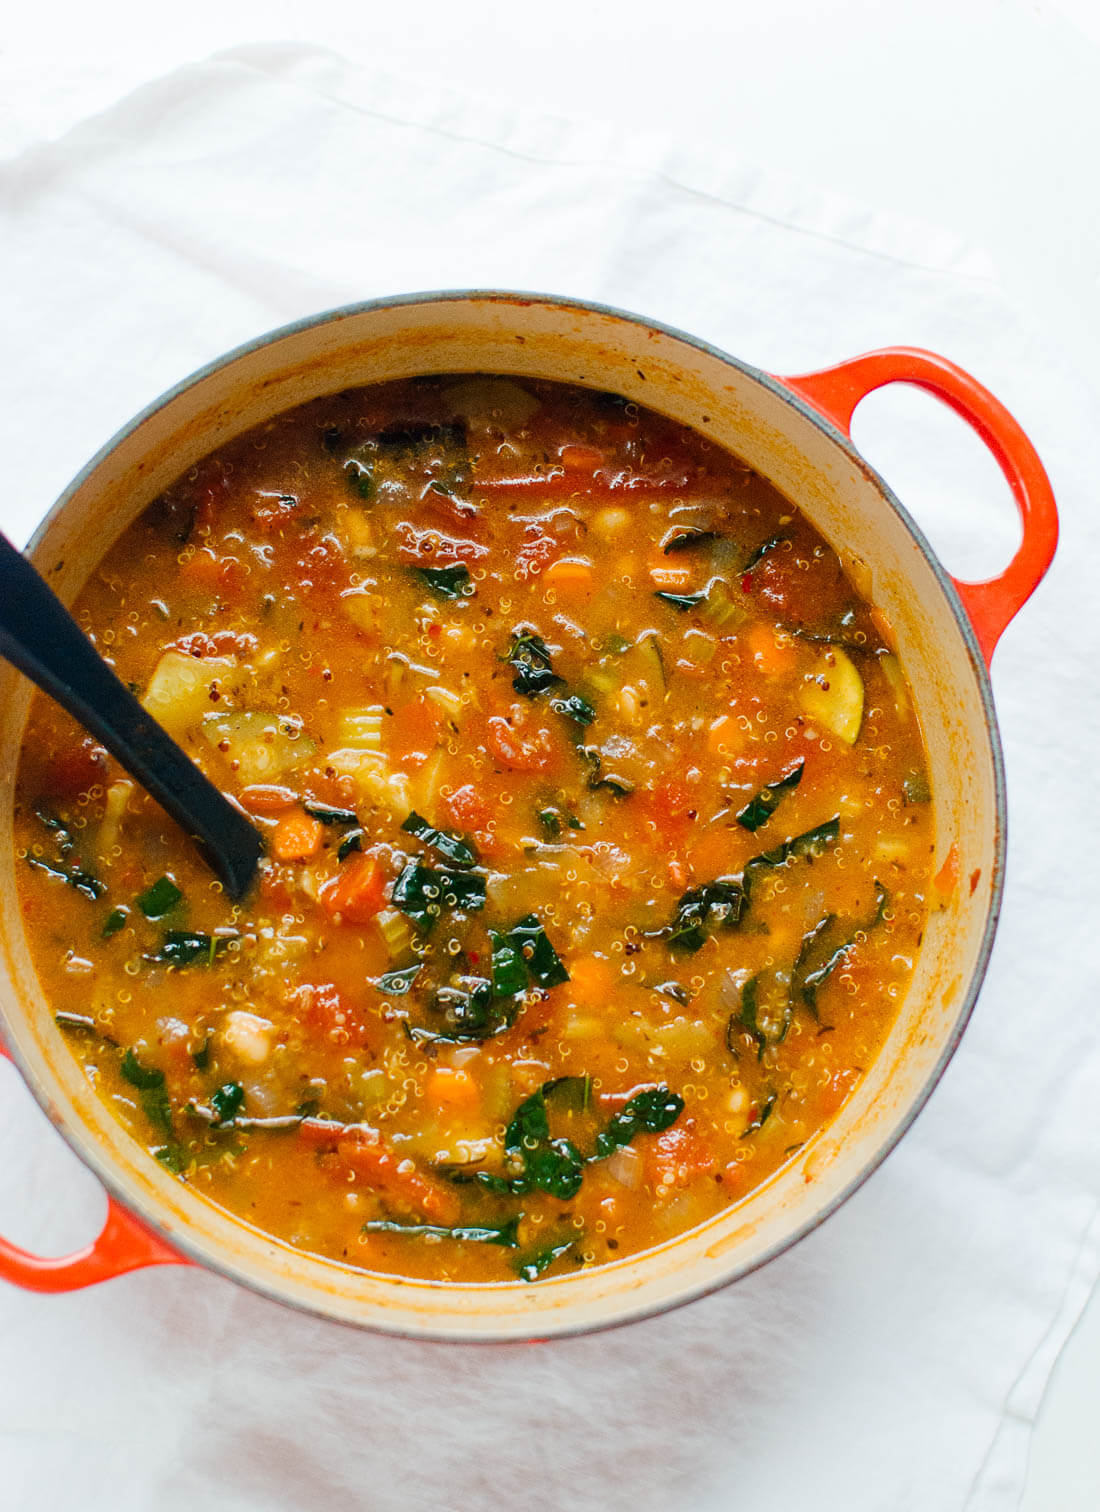 Forum on this topic: Slow Cooker Kale and Quinoa Soup, slow-cooker-kale-and-quinoa-soup/